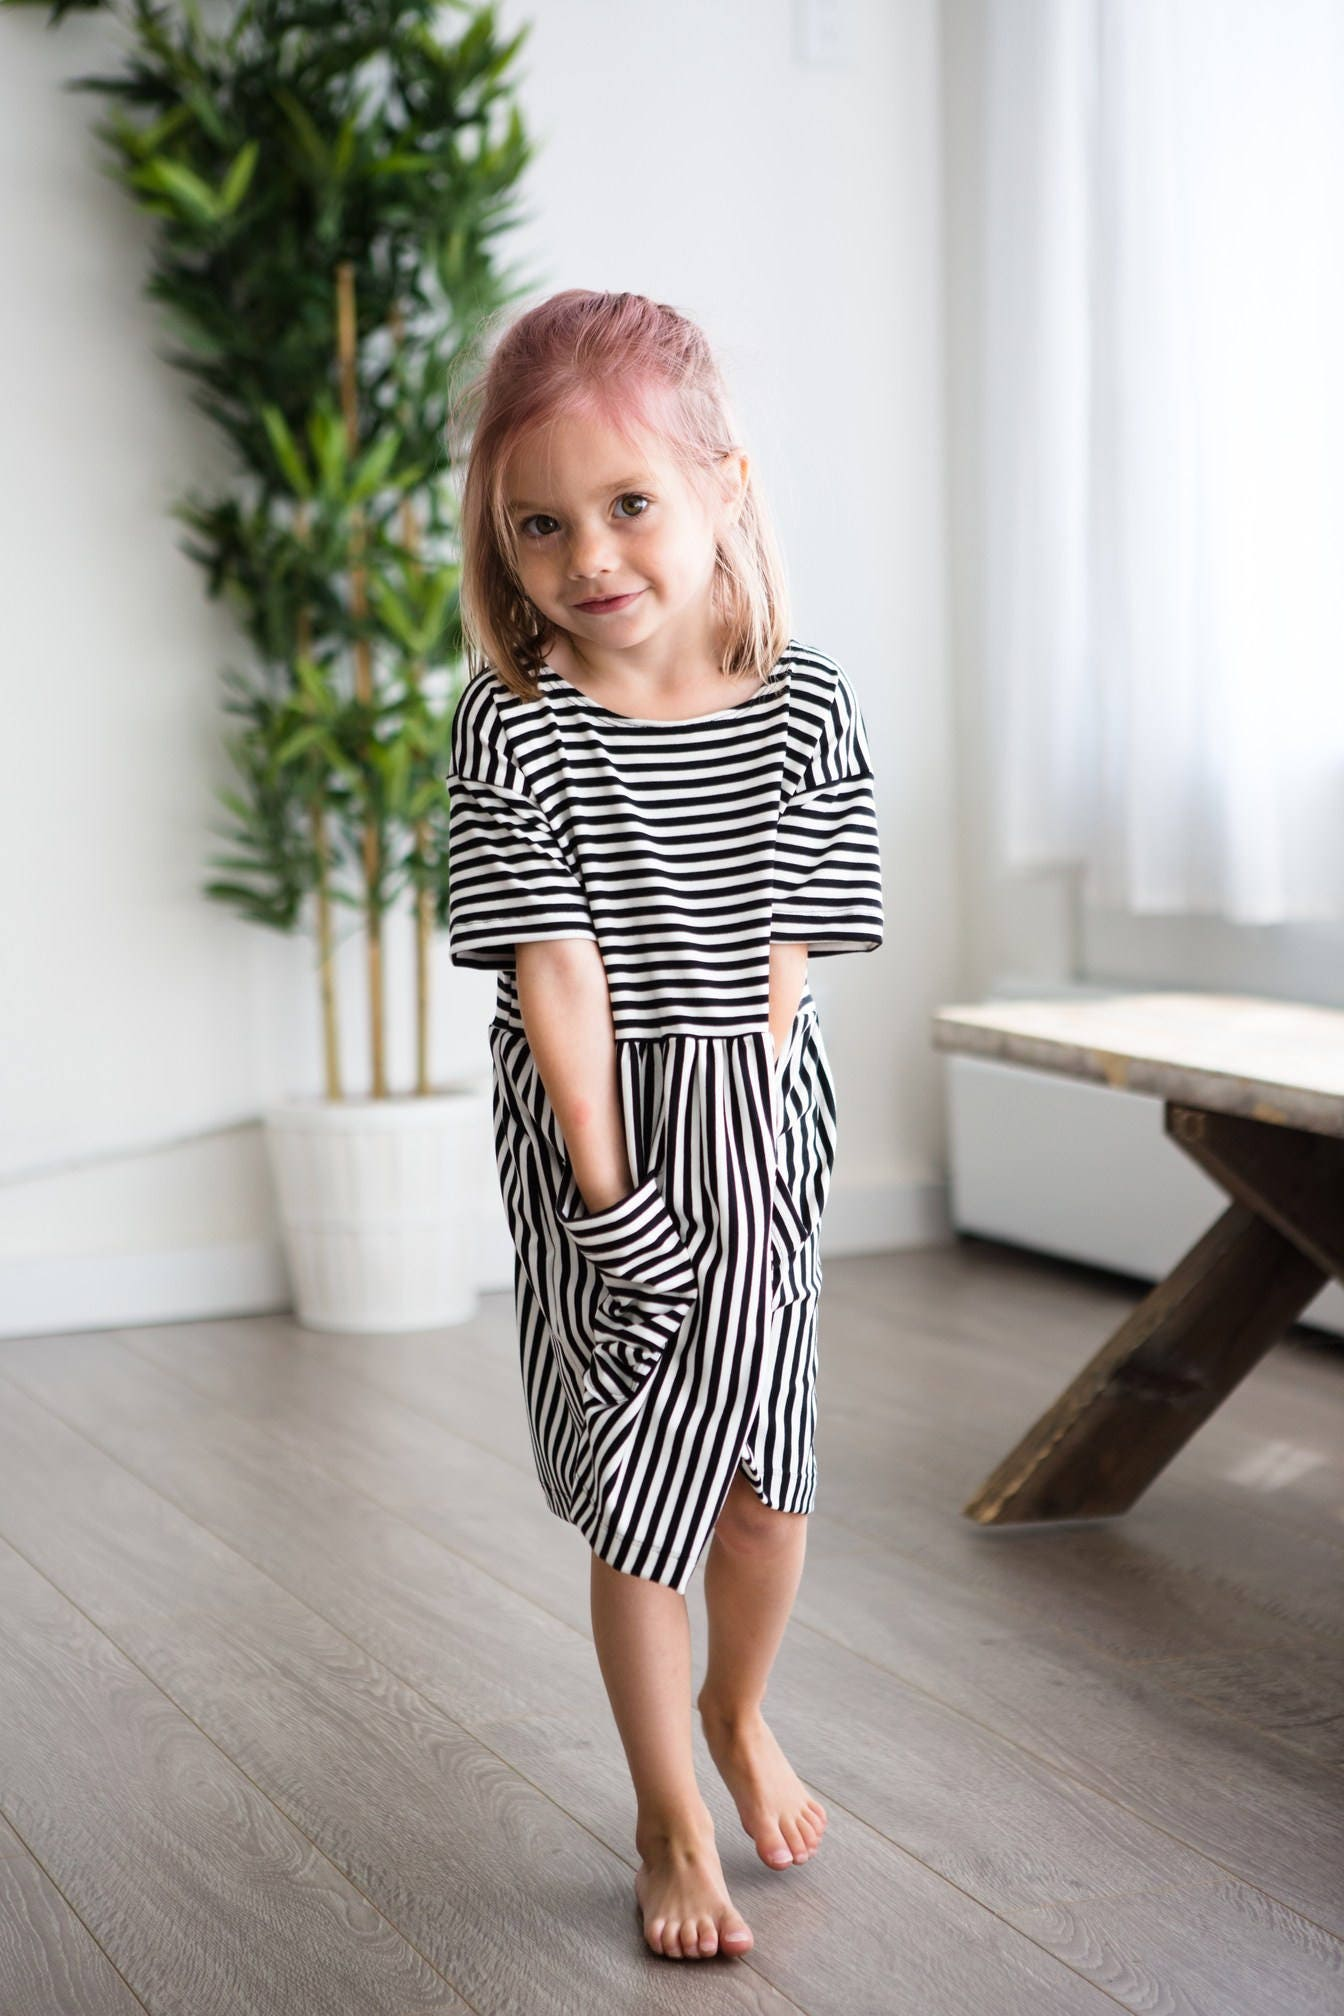 image trendy baby. Boho Dress | Stripe Bamboo, Baby Dress, Hipster Clothes, Toddler Image Trendy A